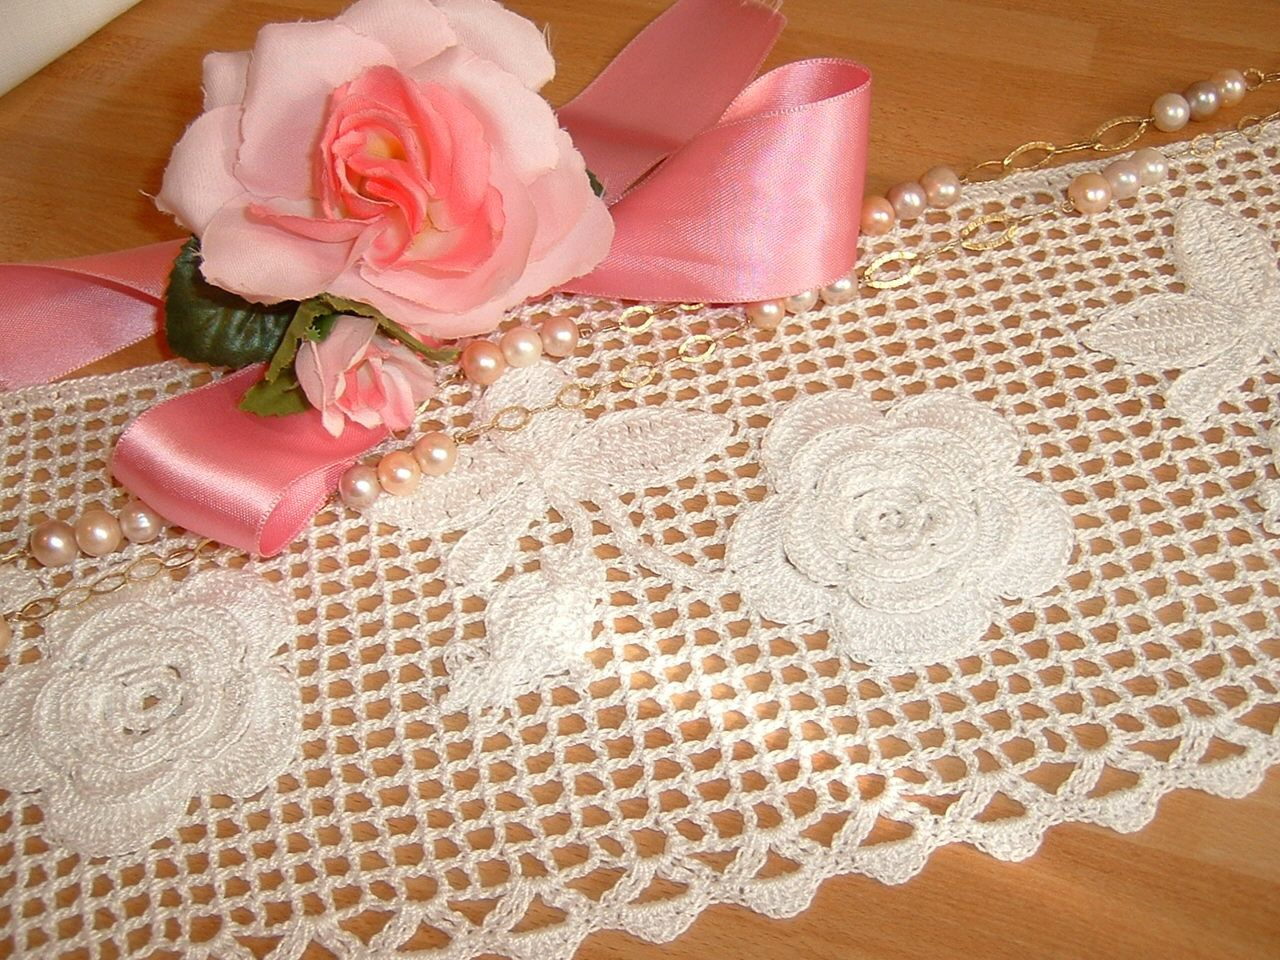 Pizzo per bordura all 39 uncinetto con i mazzolini di rose d for Pizzi all uncinetto per credenze